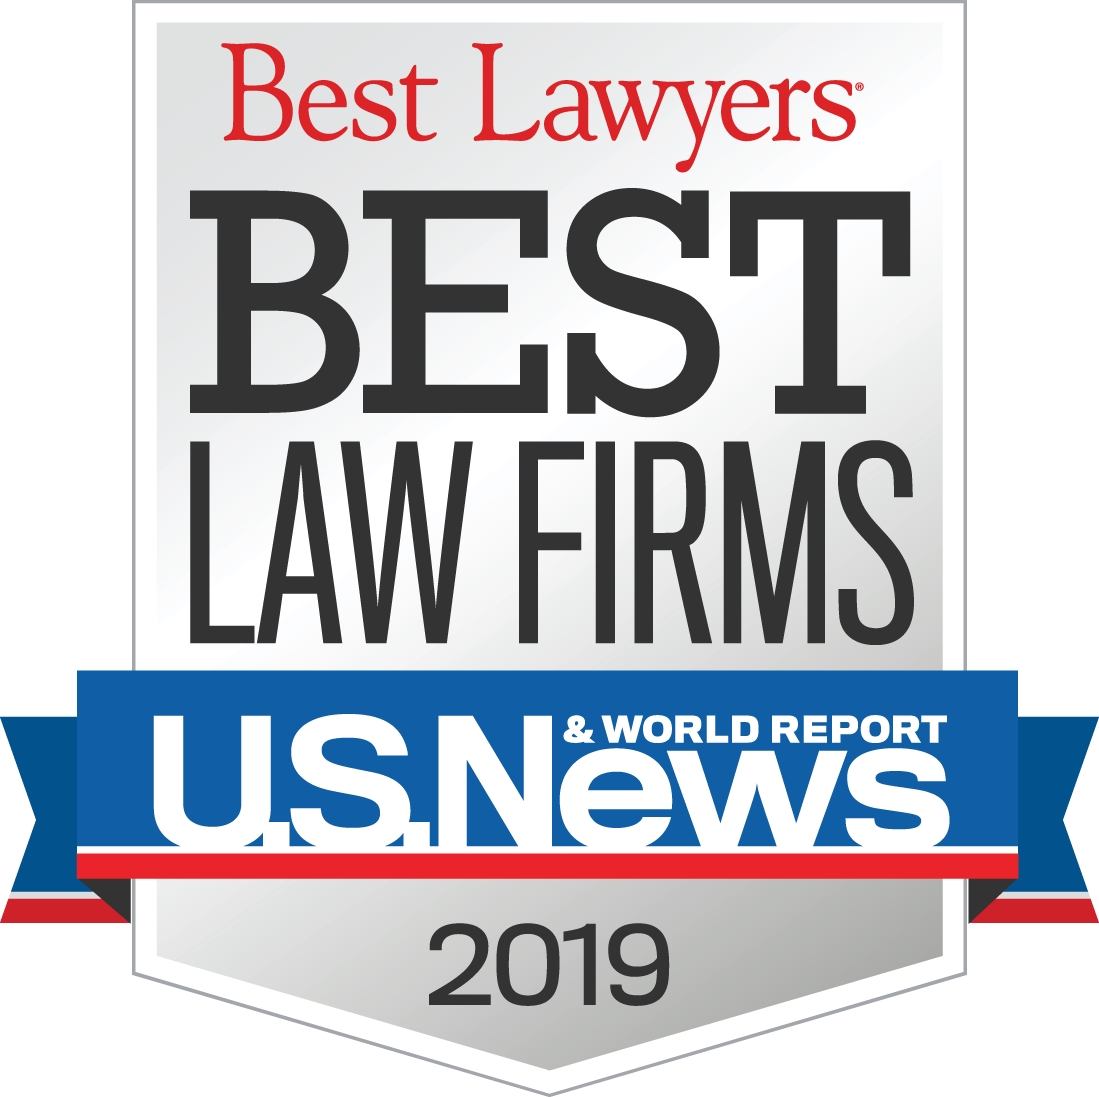 U.S. News & World Report - Best Lawyers Ranks Martin Pringle Among Best Law Firms